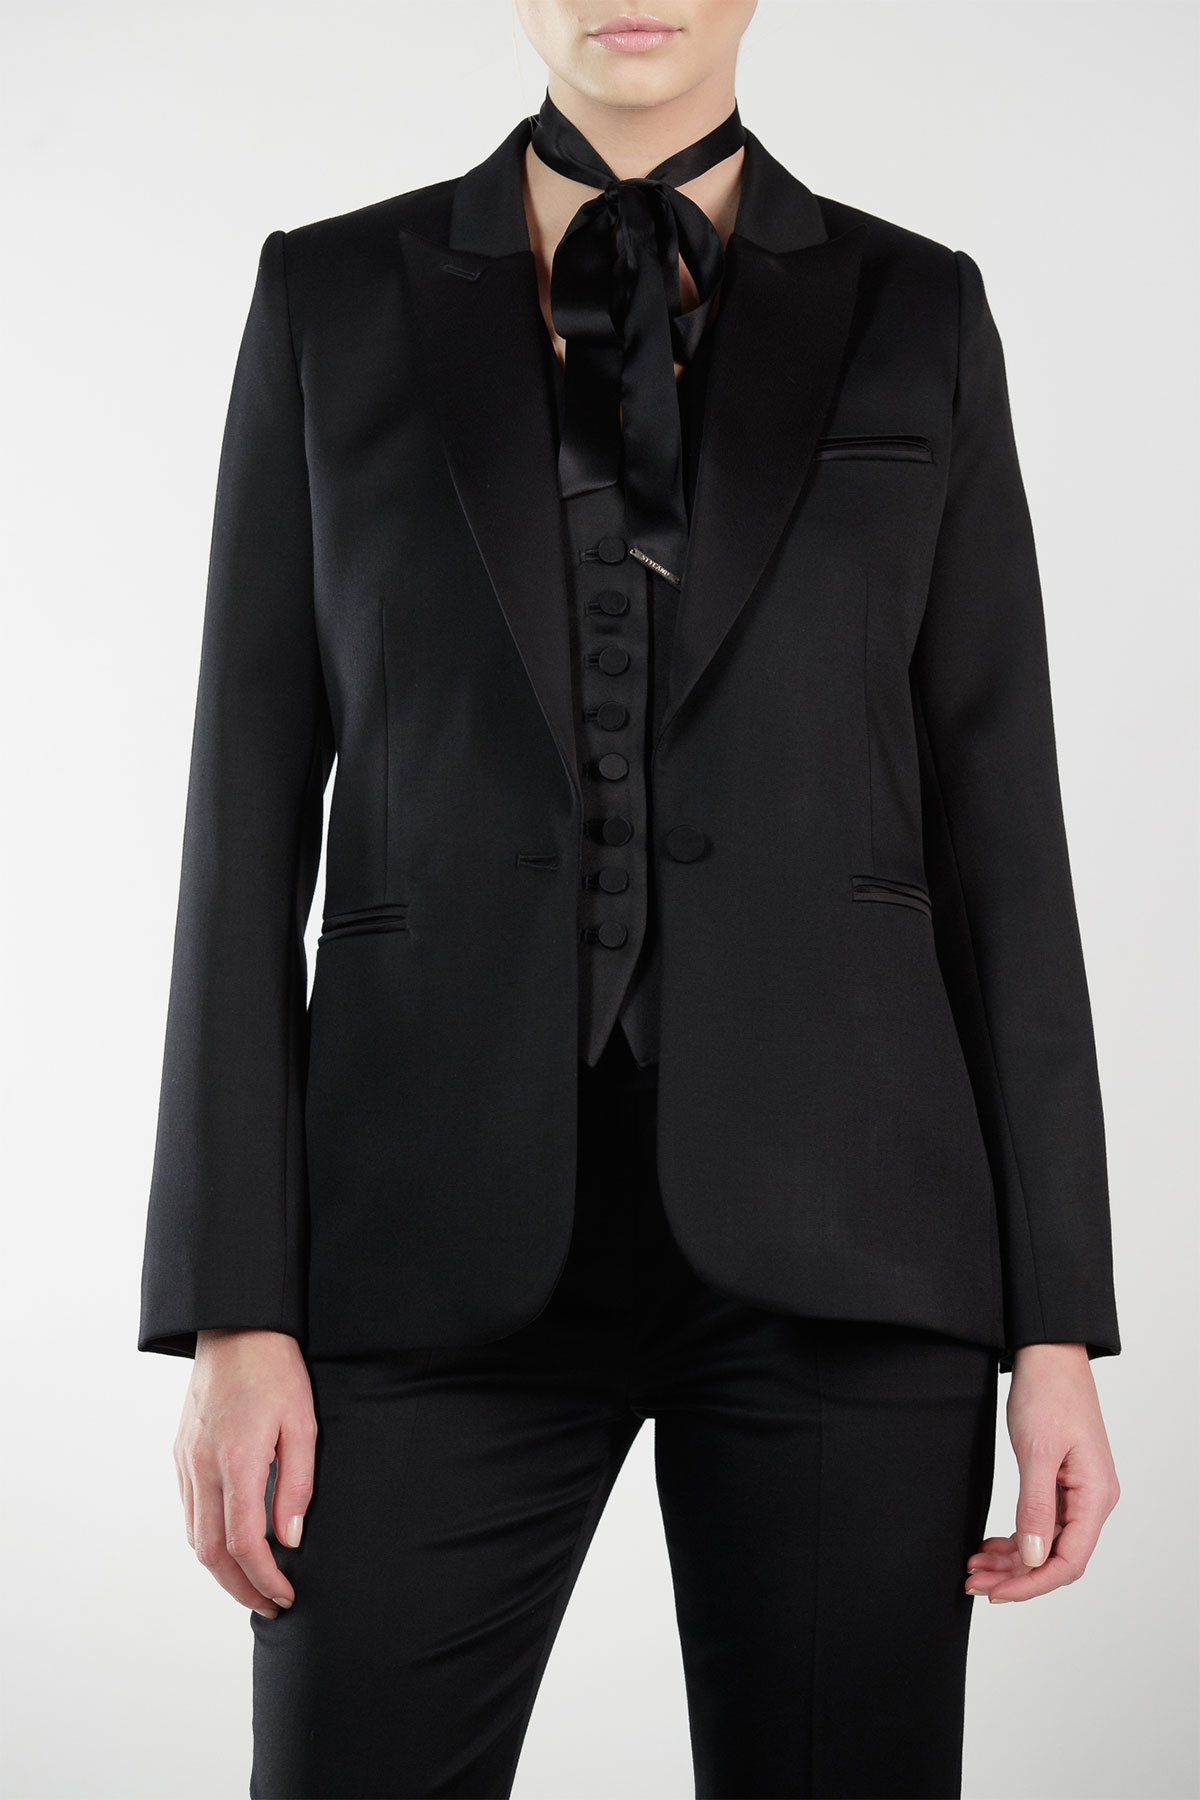 Black Satin Trimmed Wool Tuxedo With Silk Lining Styland